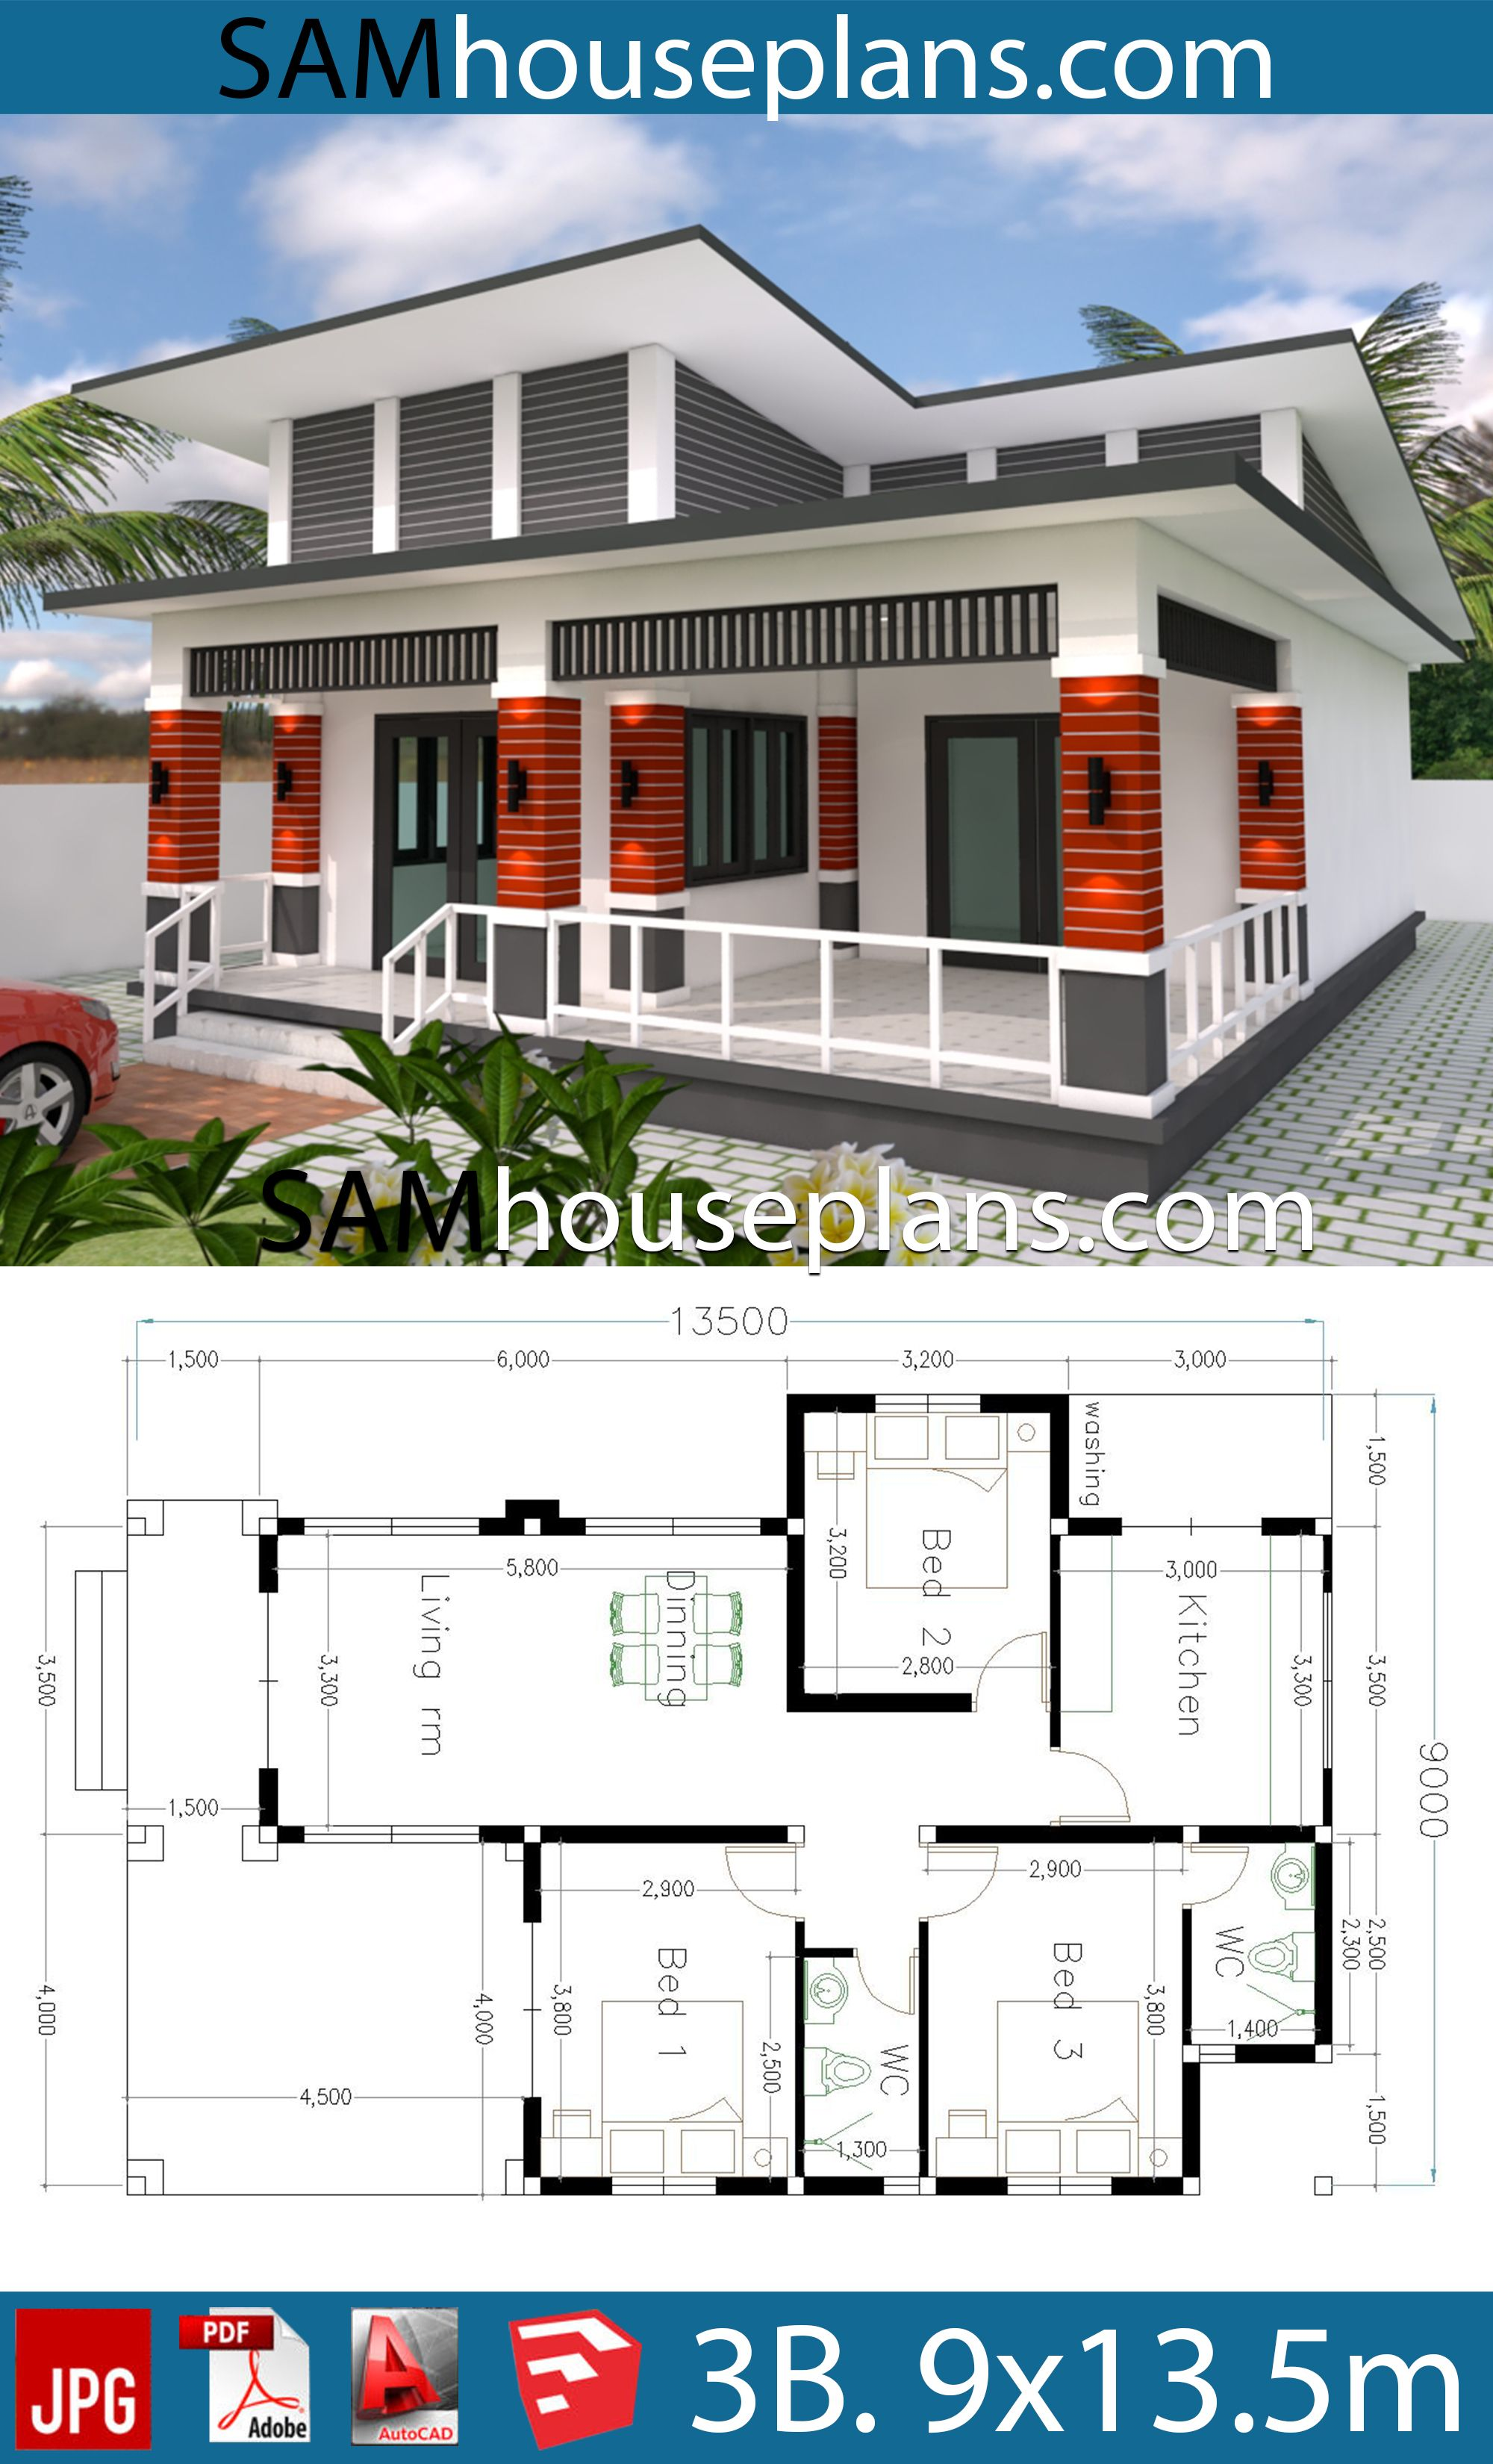 House Plans 9x13 5 With 3 Bedrooms House Plans Free Downloads Beautiful House Plans House Blueprints Simple House Design